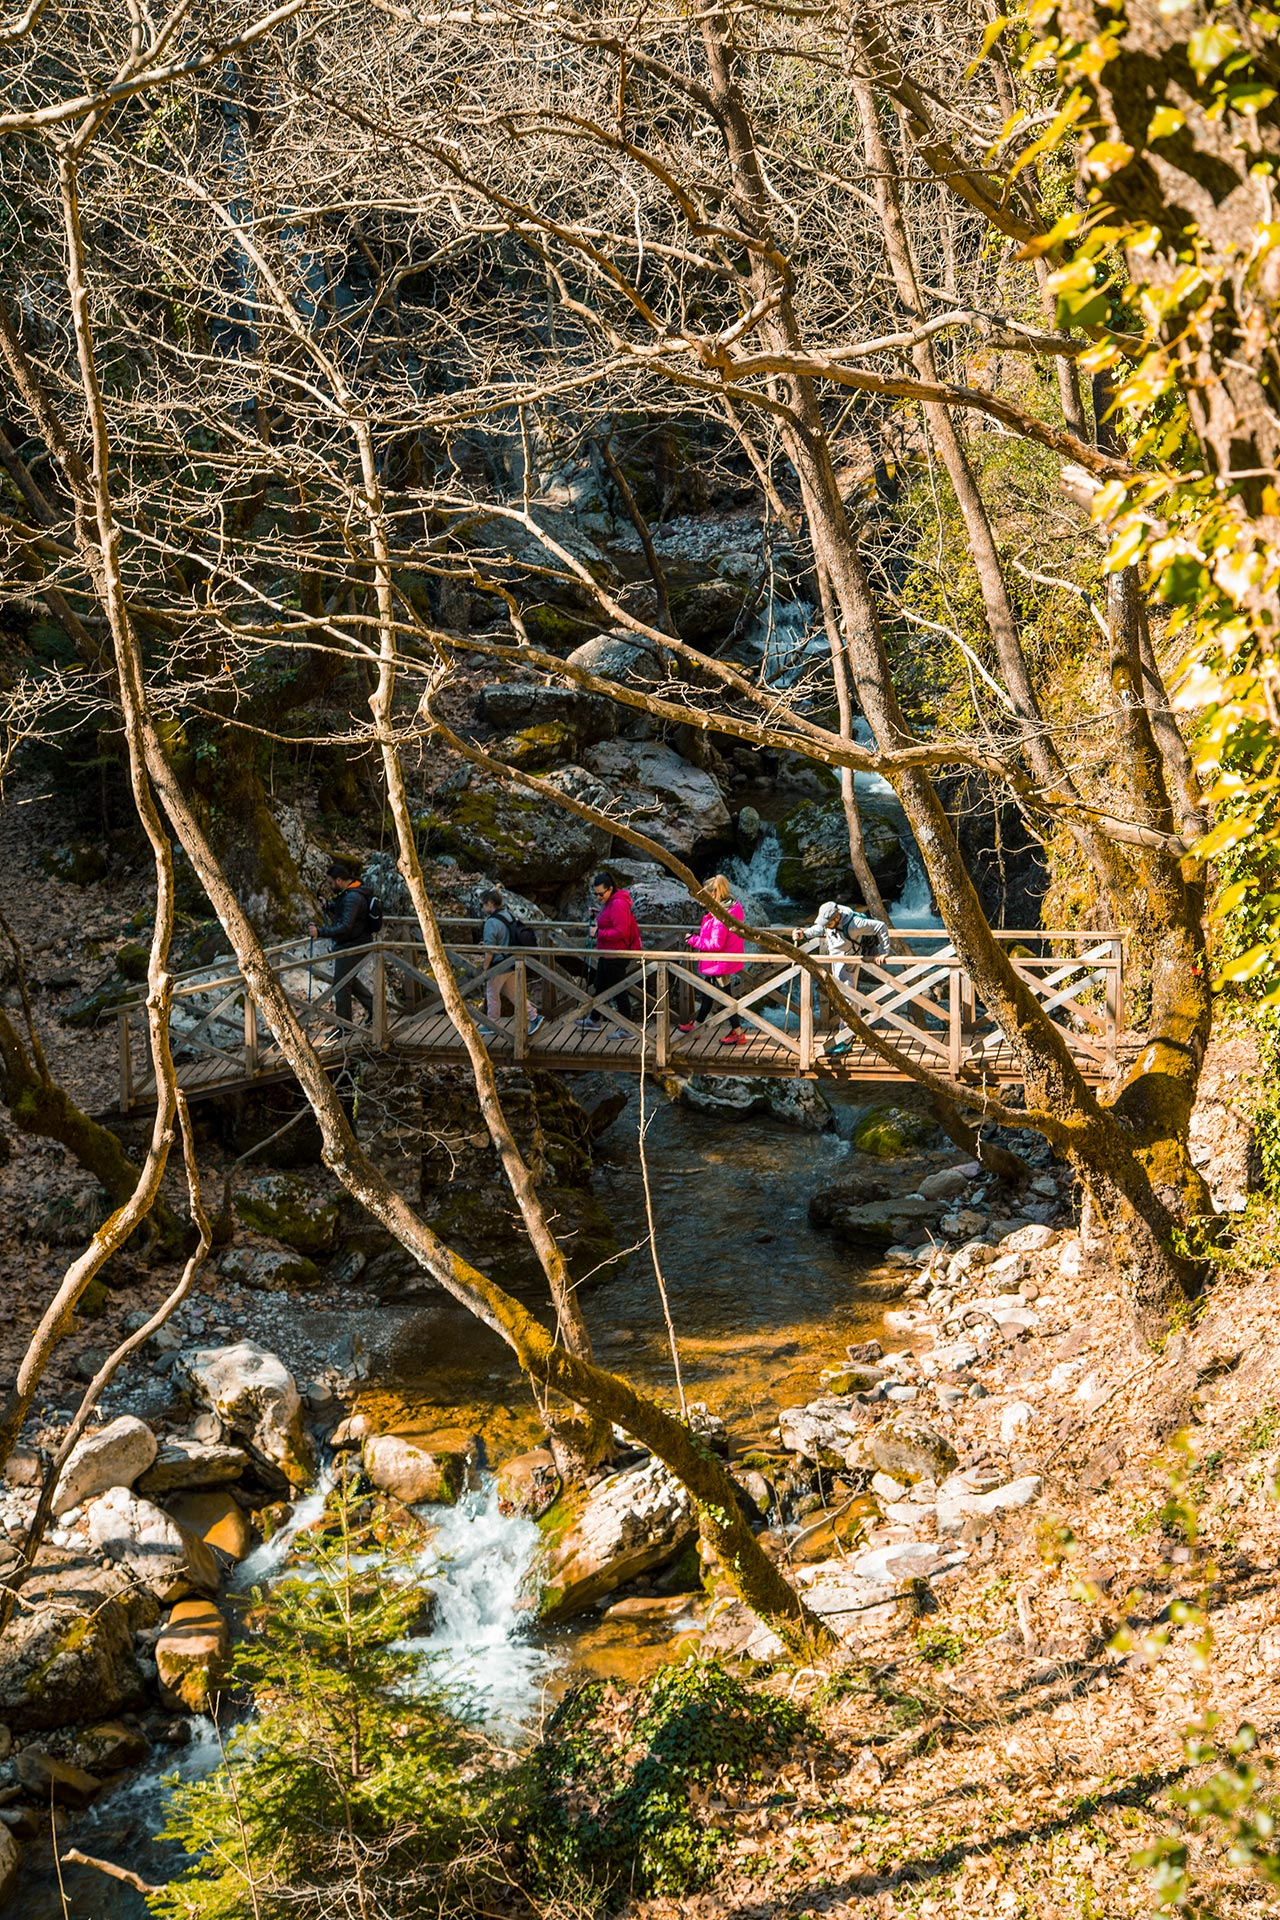 Heading out from of the village of Proussos you follow a well-marked trail up the gorge, crossing little wooden bridges